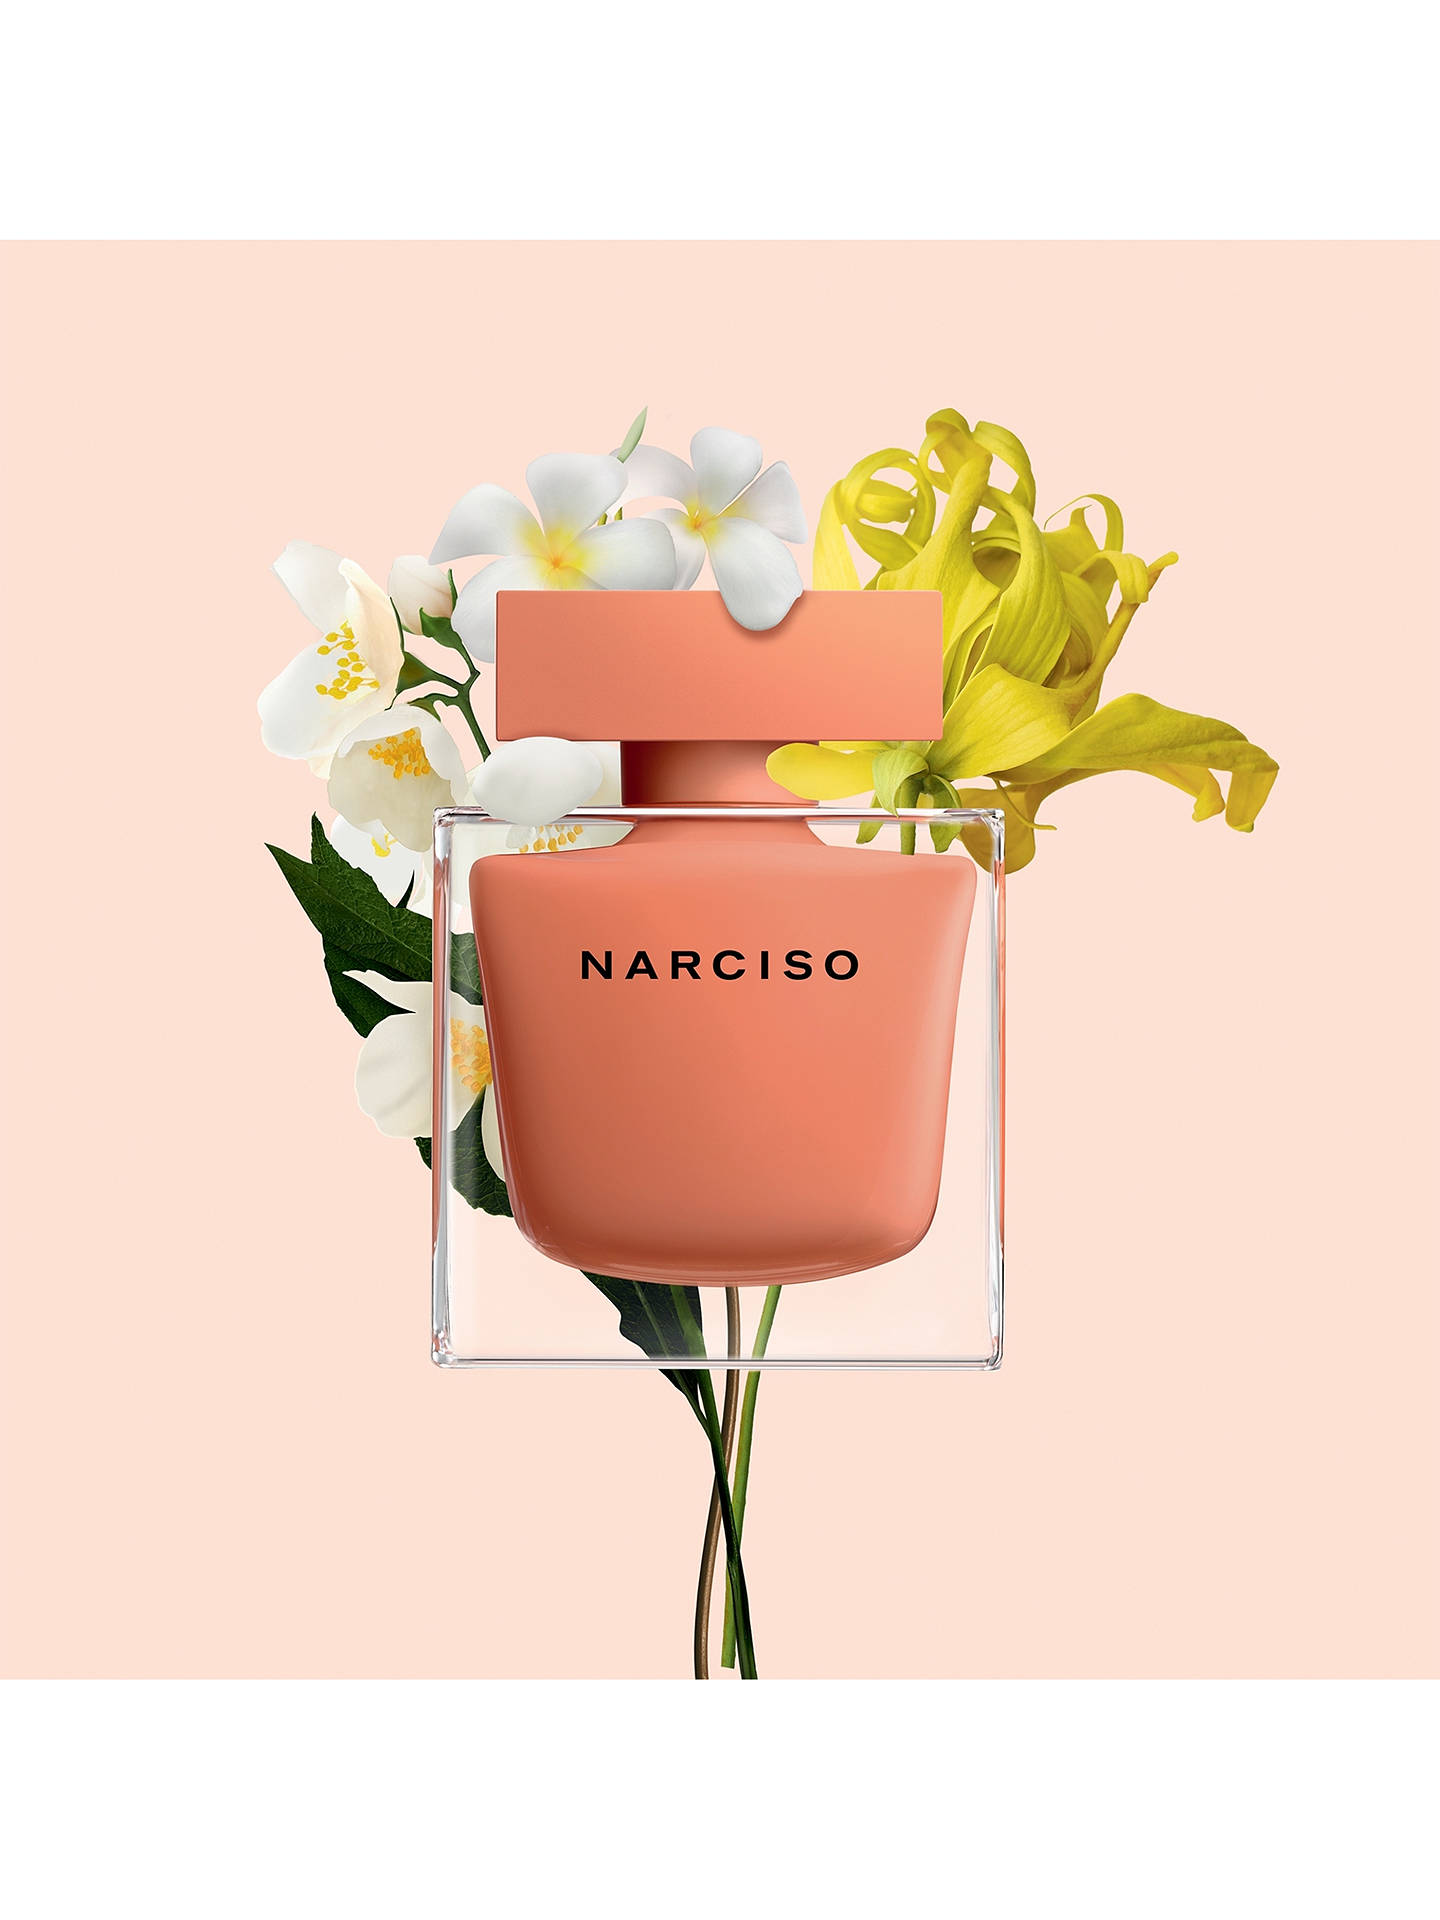 8 New Summer Scents